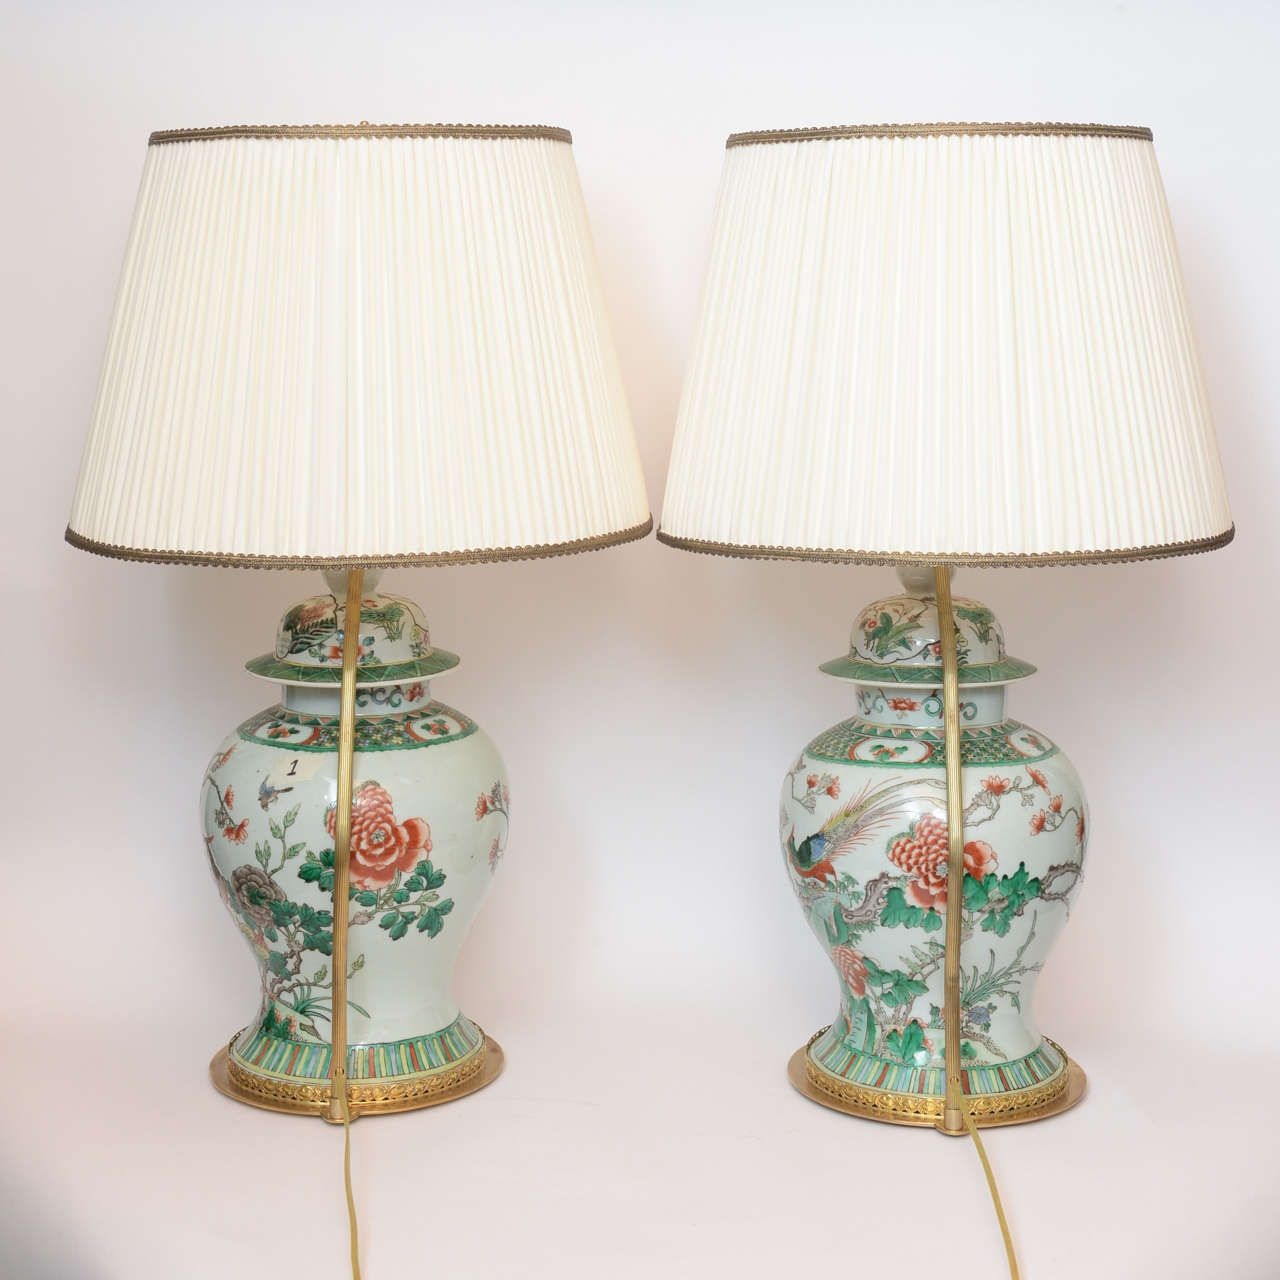 Pair of 19th Century Chinese Ginger Jar Lamps, with ...